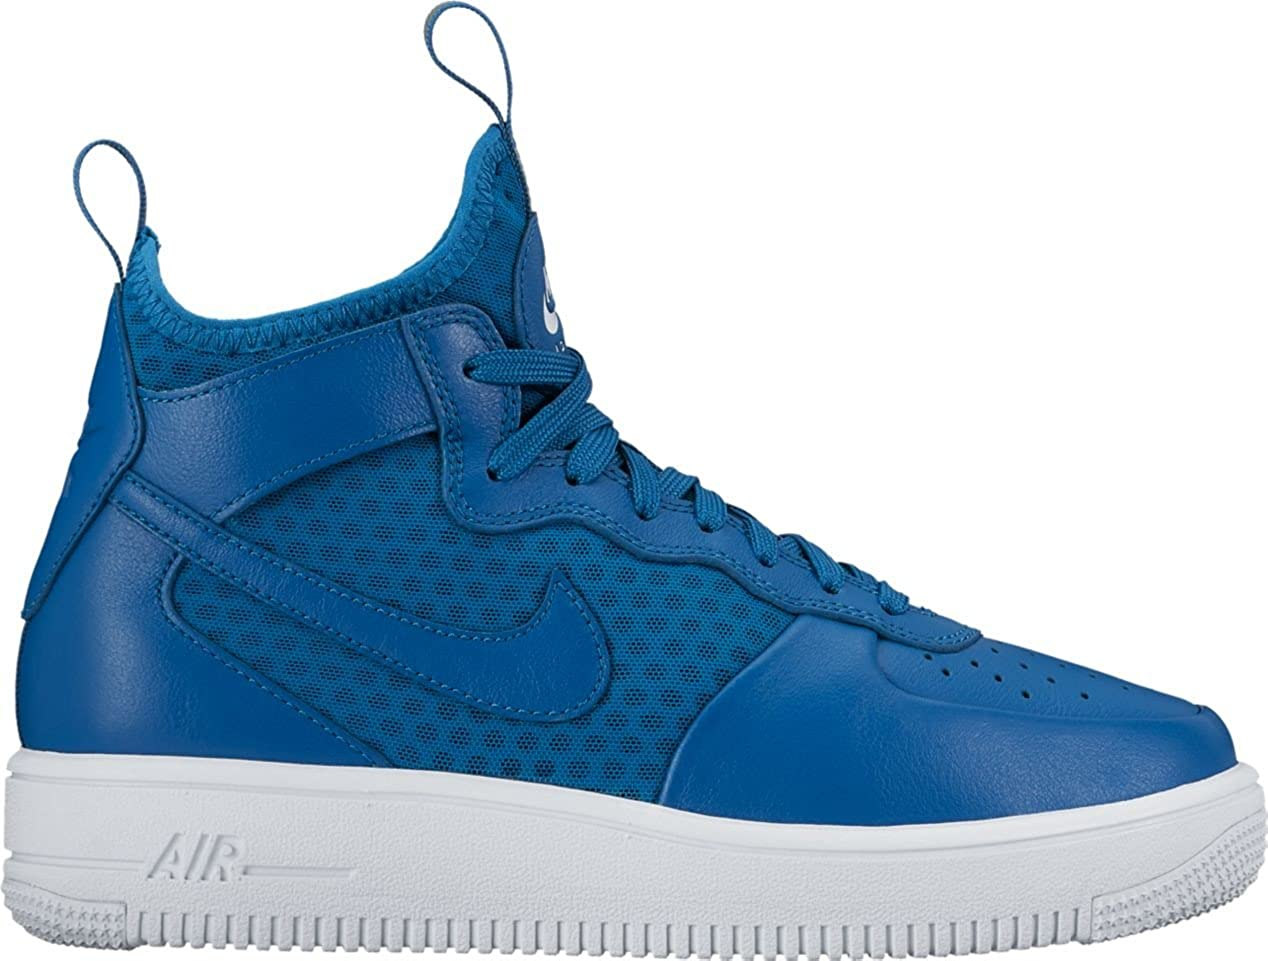 nike air force 1 ulta force mid